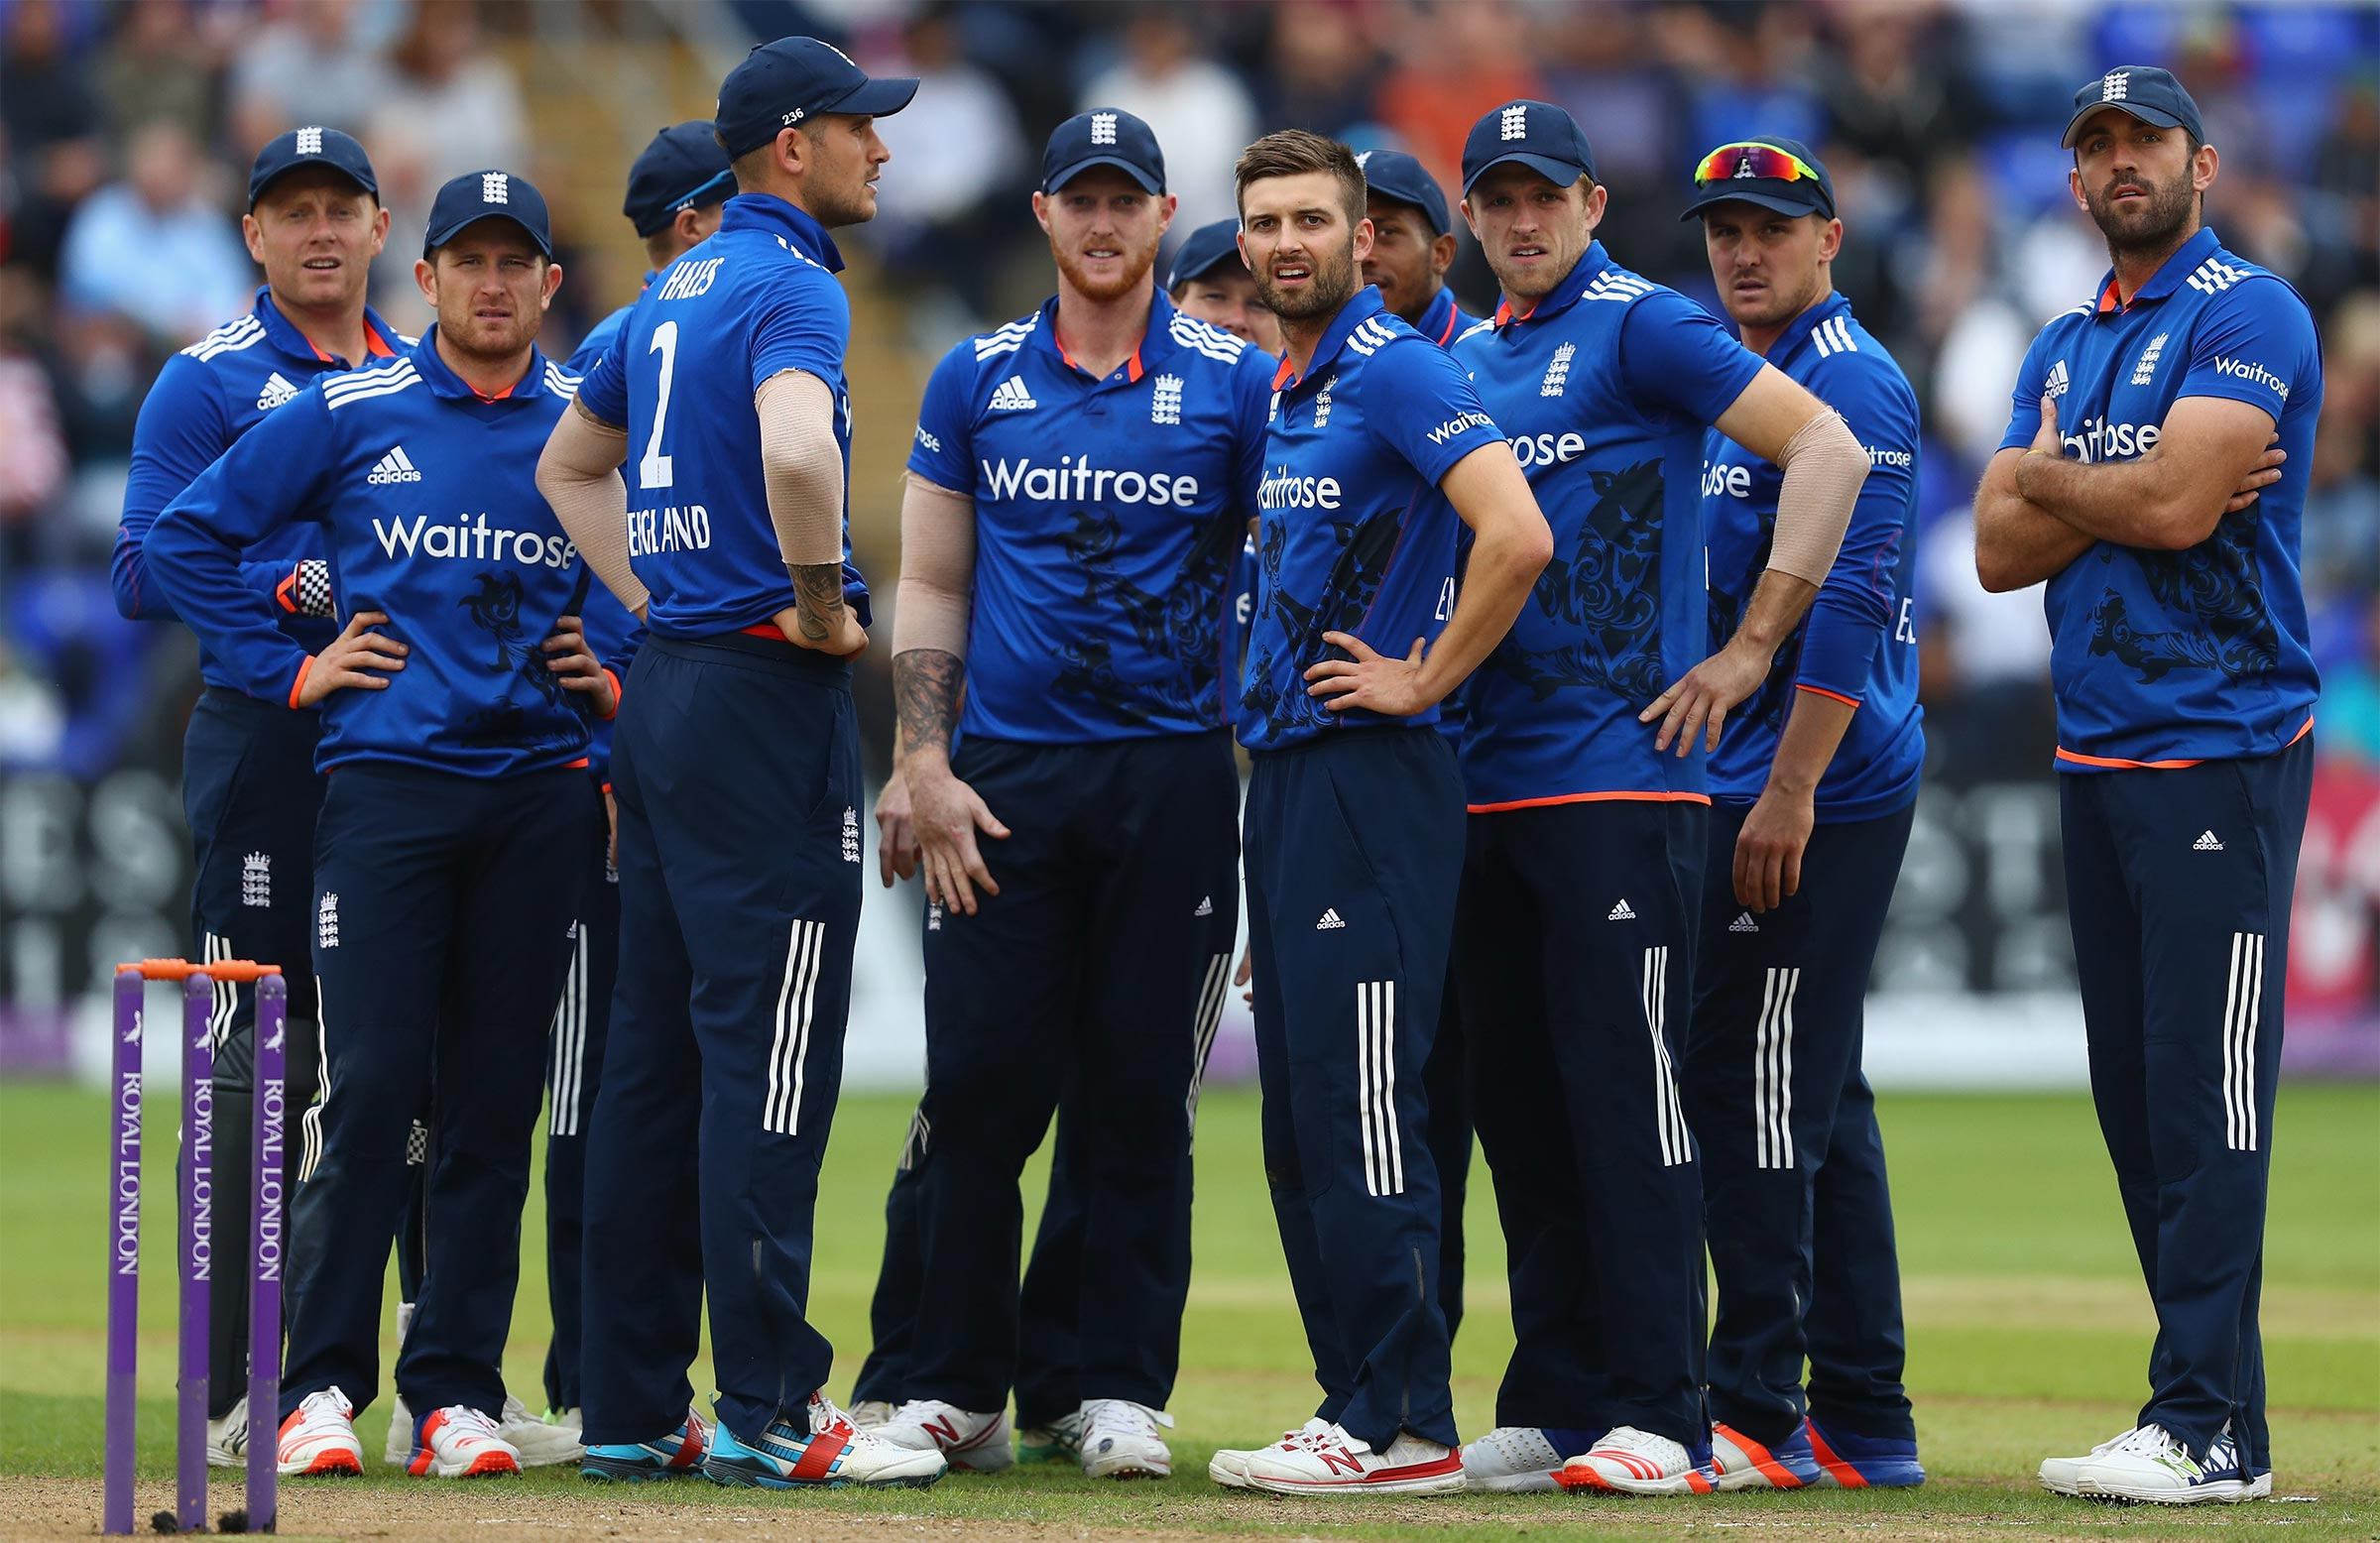 England will enter the Champions Trophy as one of the favourites // Getty